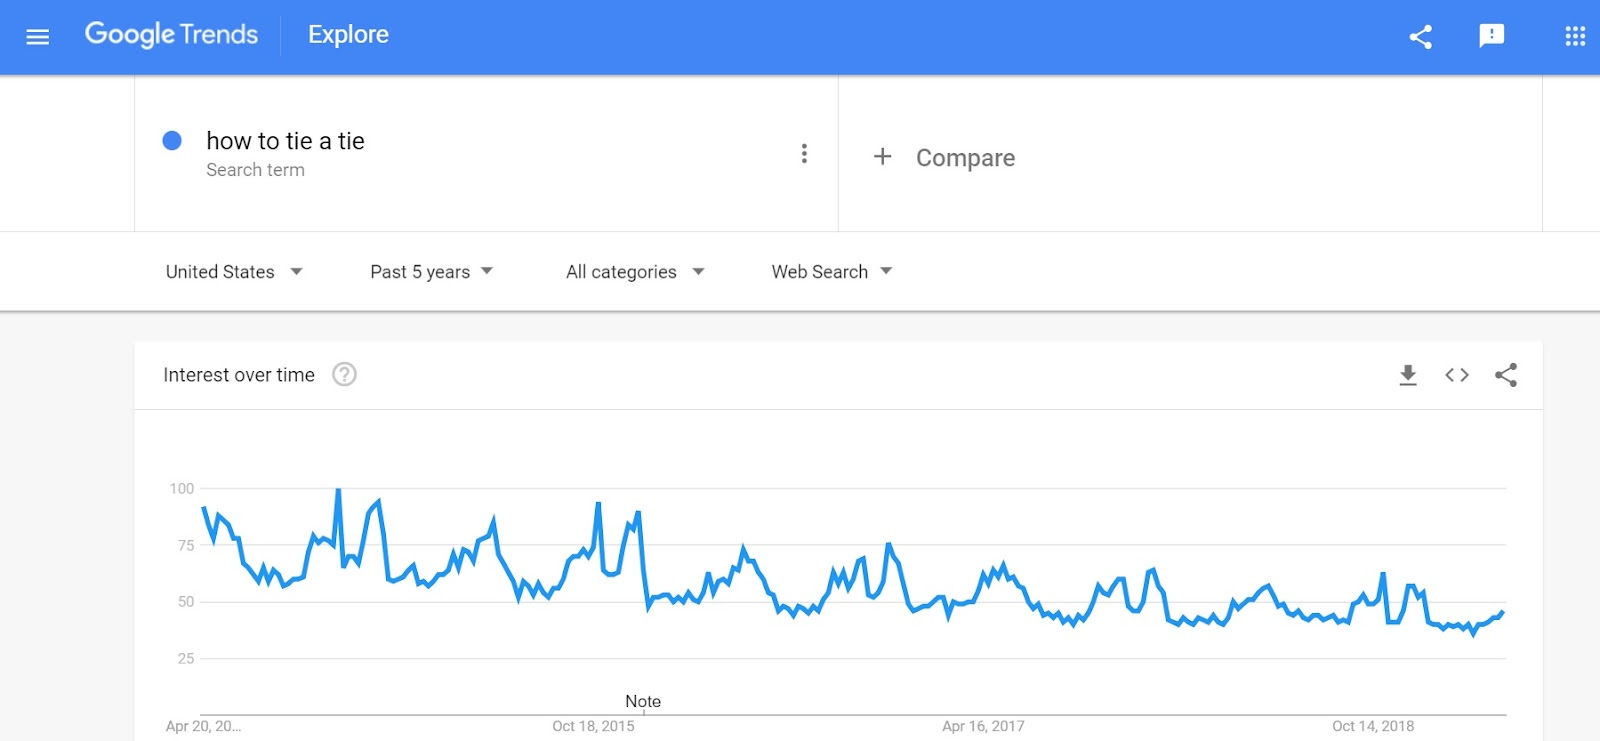 How to tie a tie Google Trends Result